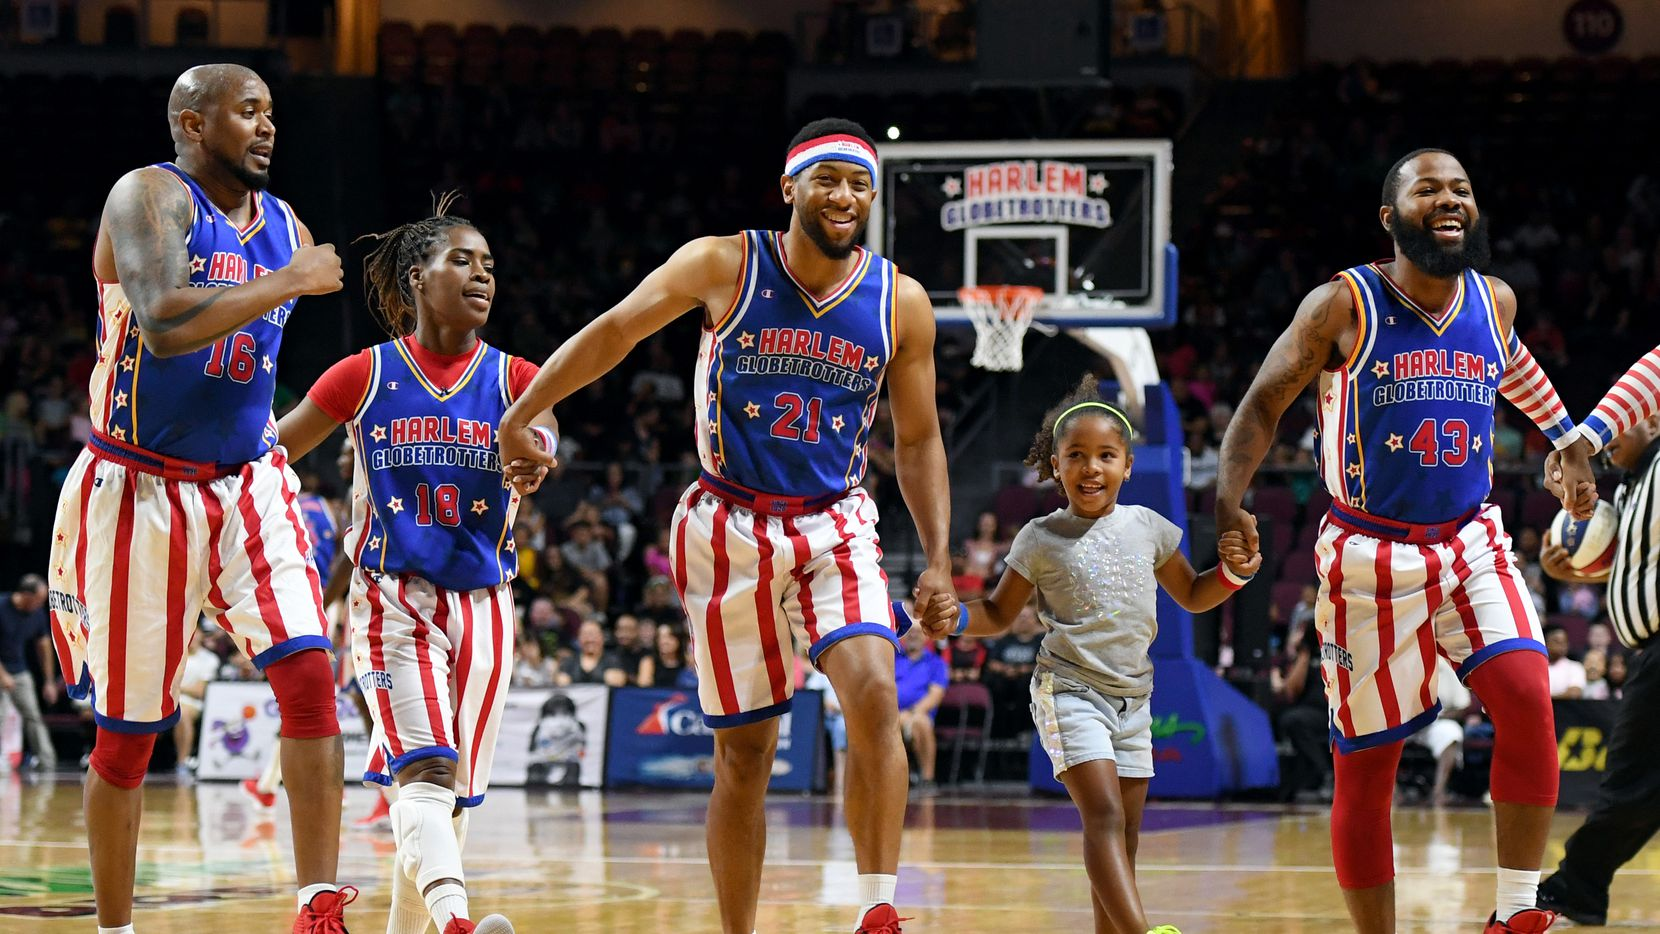 On the same day that the Harlem Globetrotters petitioned the NBA to allow it into the league, the team announced a 150-date tour, including a stop at Fort Worth's Dickies Arena.